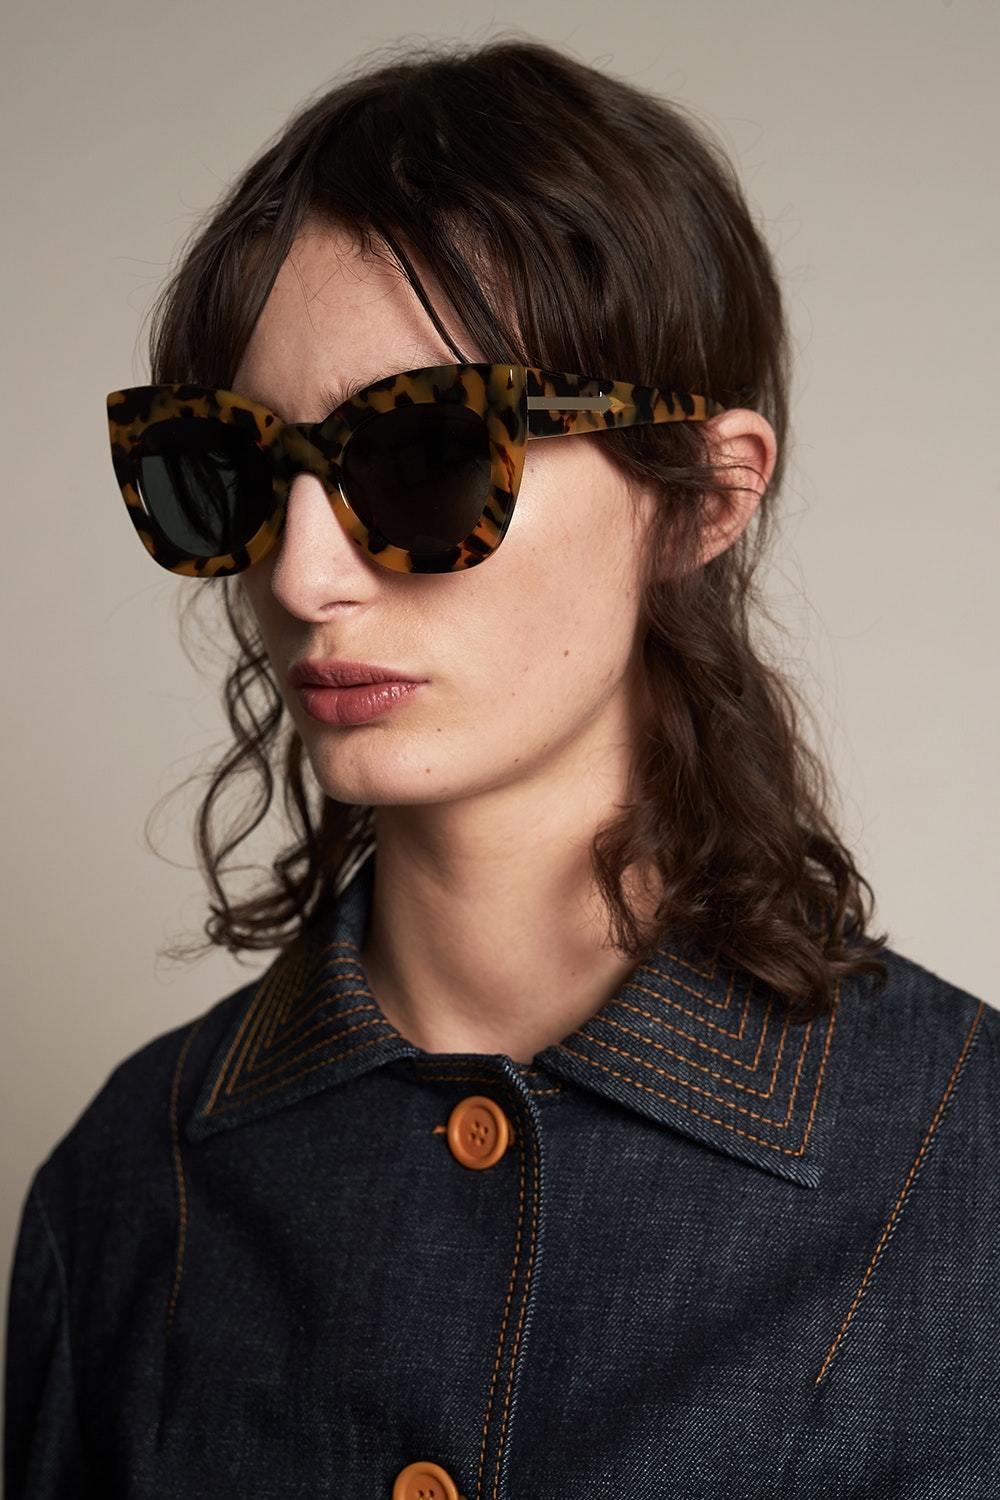 SUNSHADES EYEWEAR NZ Eyewear CRAZY TORT Karen Walker | Northern Lights Sunglasses - Crazy Tort